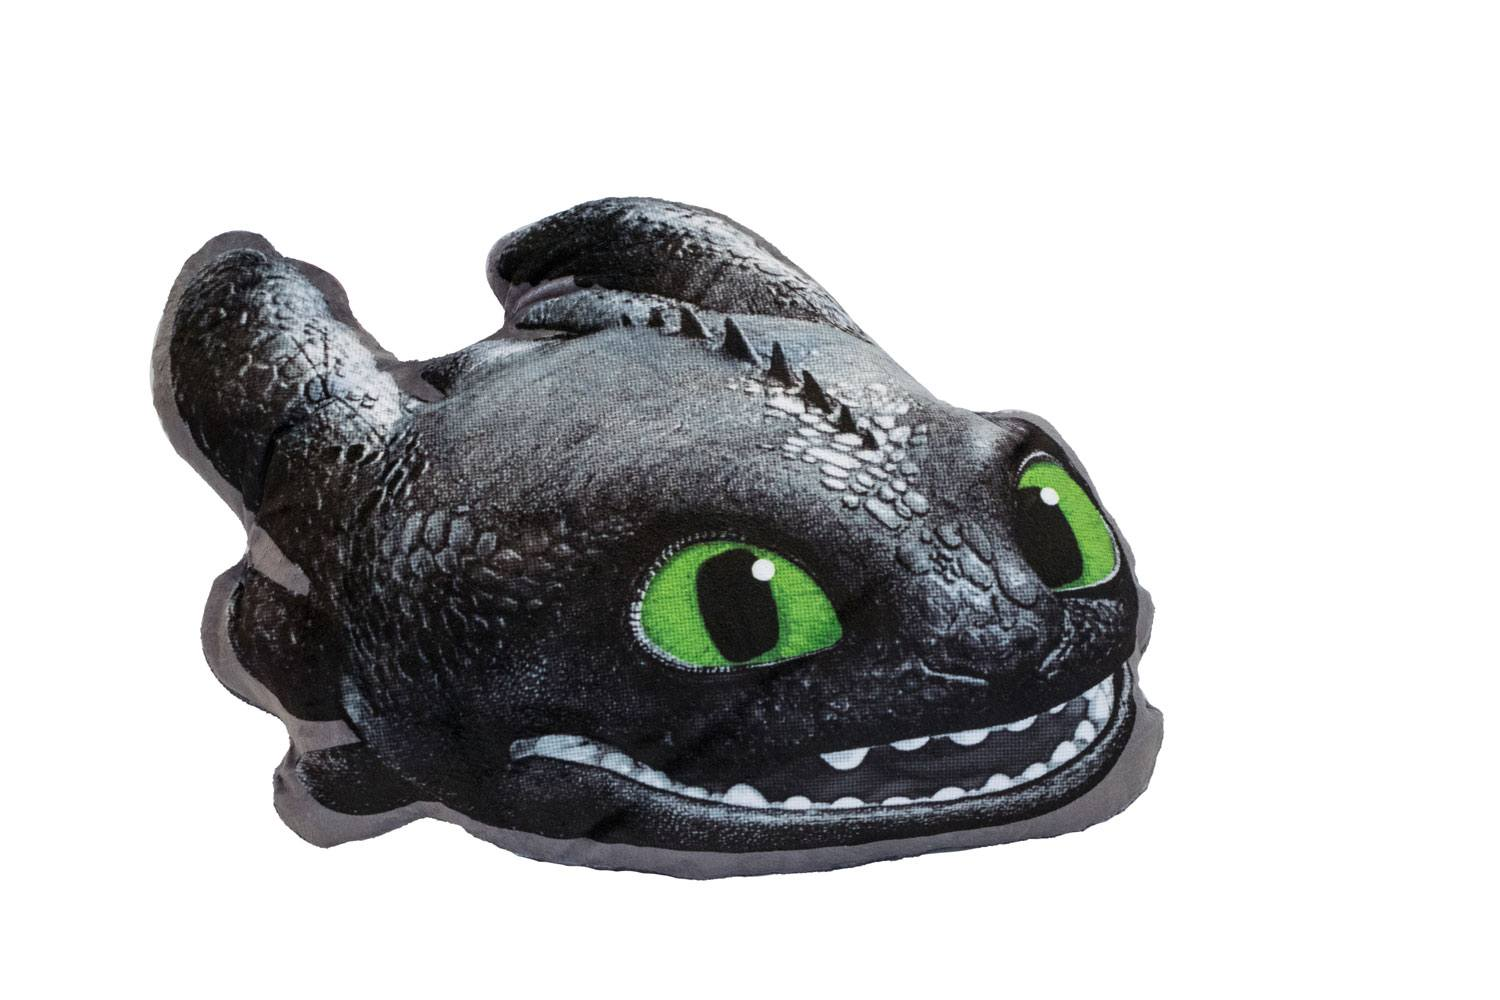 How to Train Your Dragon 3 Pillow Toothless 40 x 30 cm